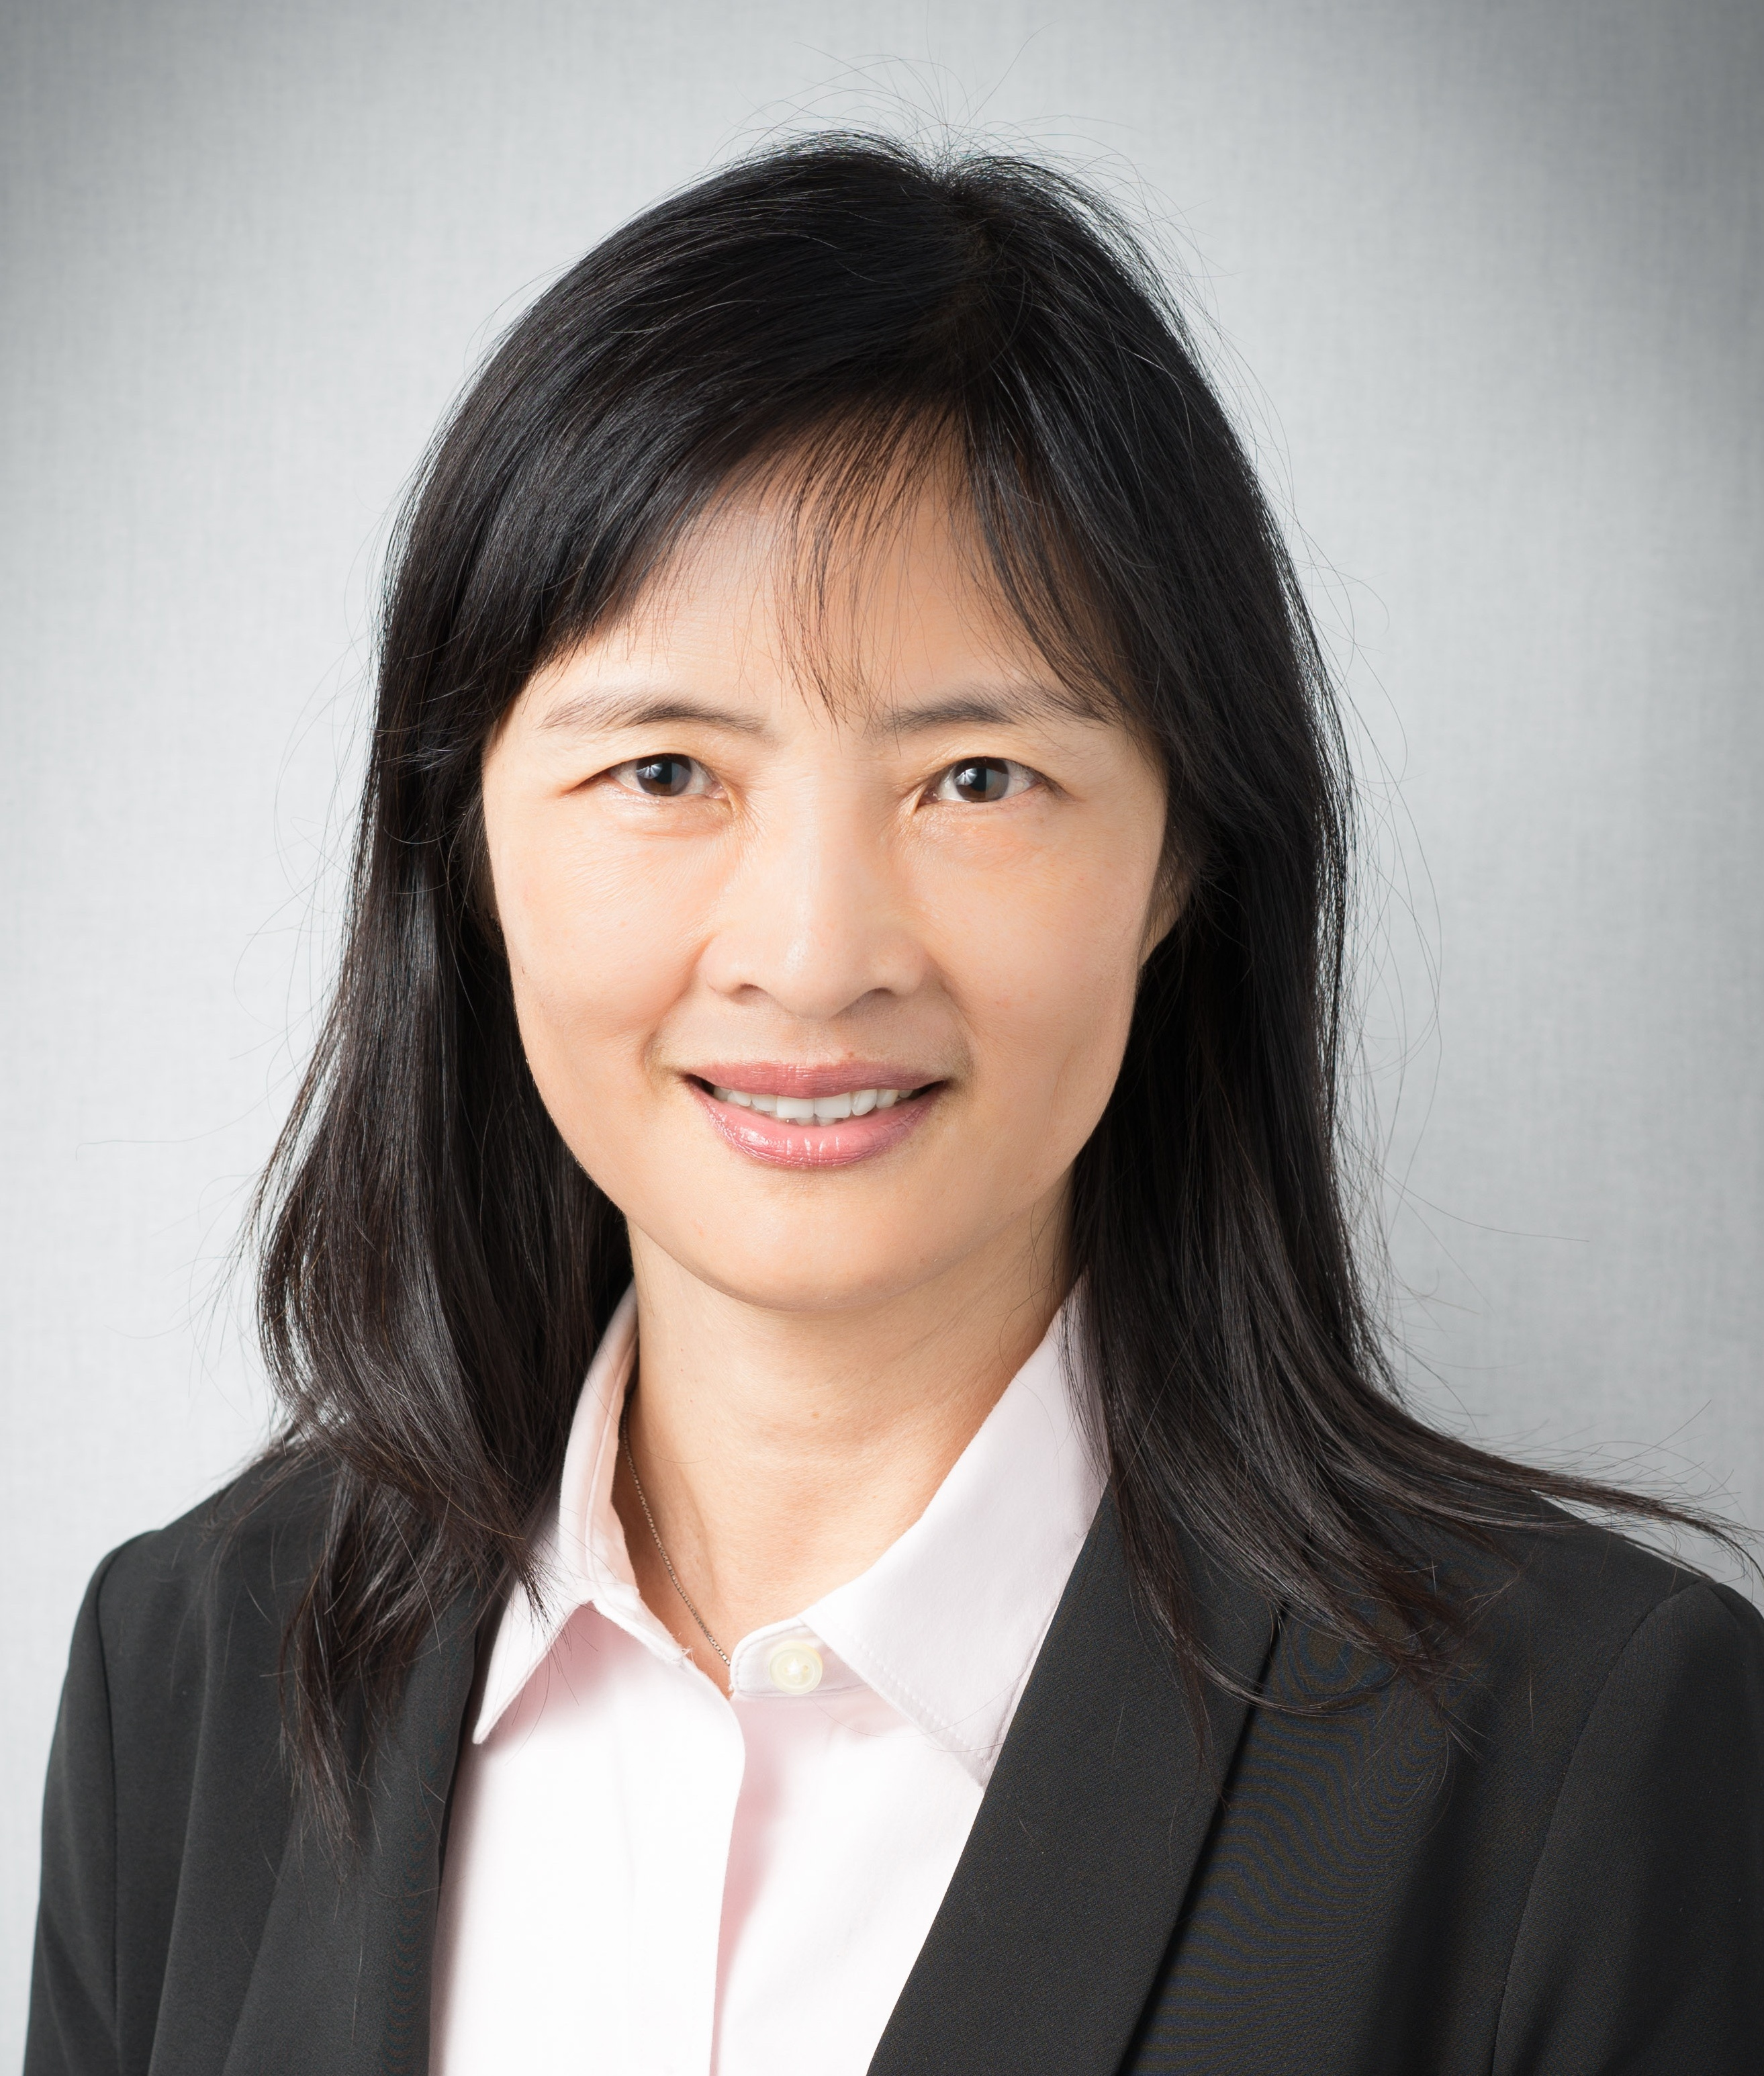 image of Doris Wang